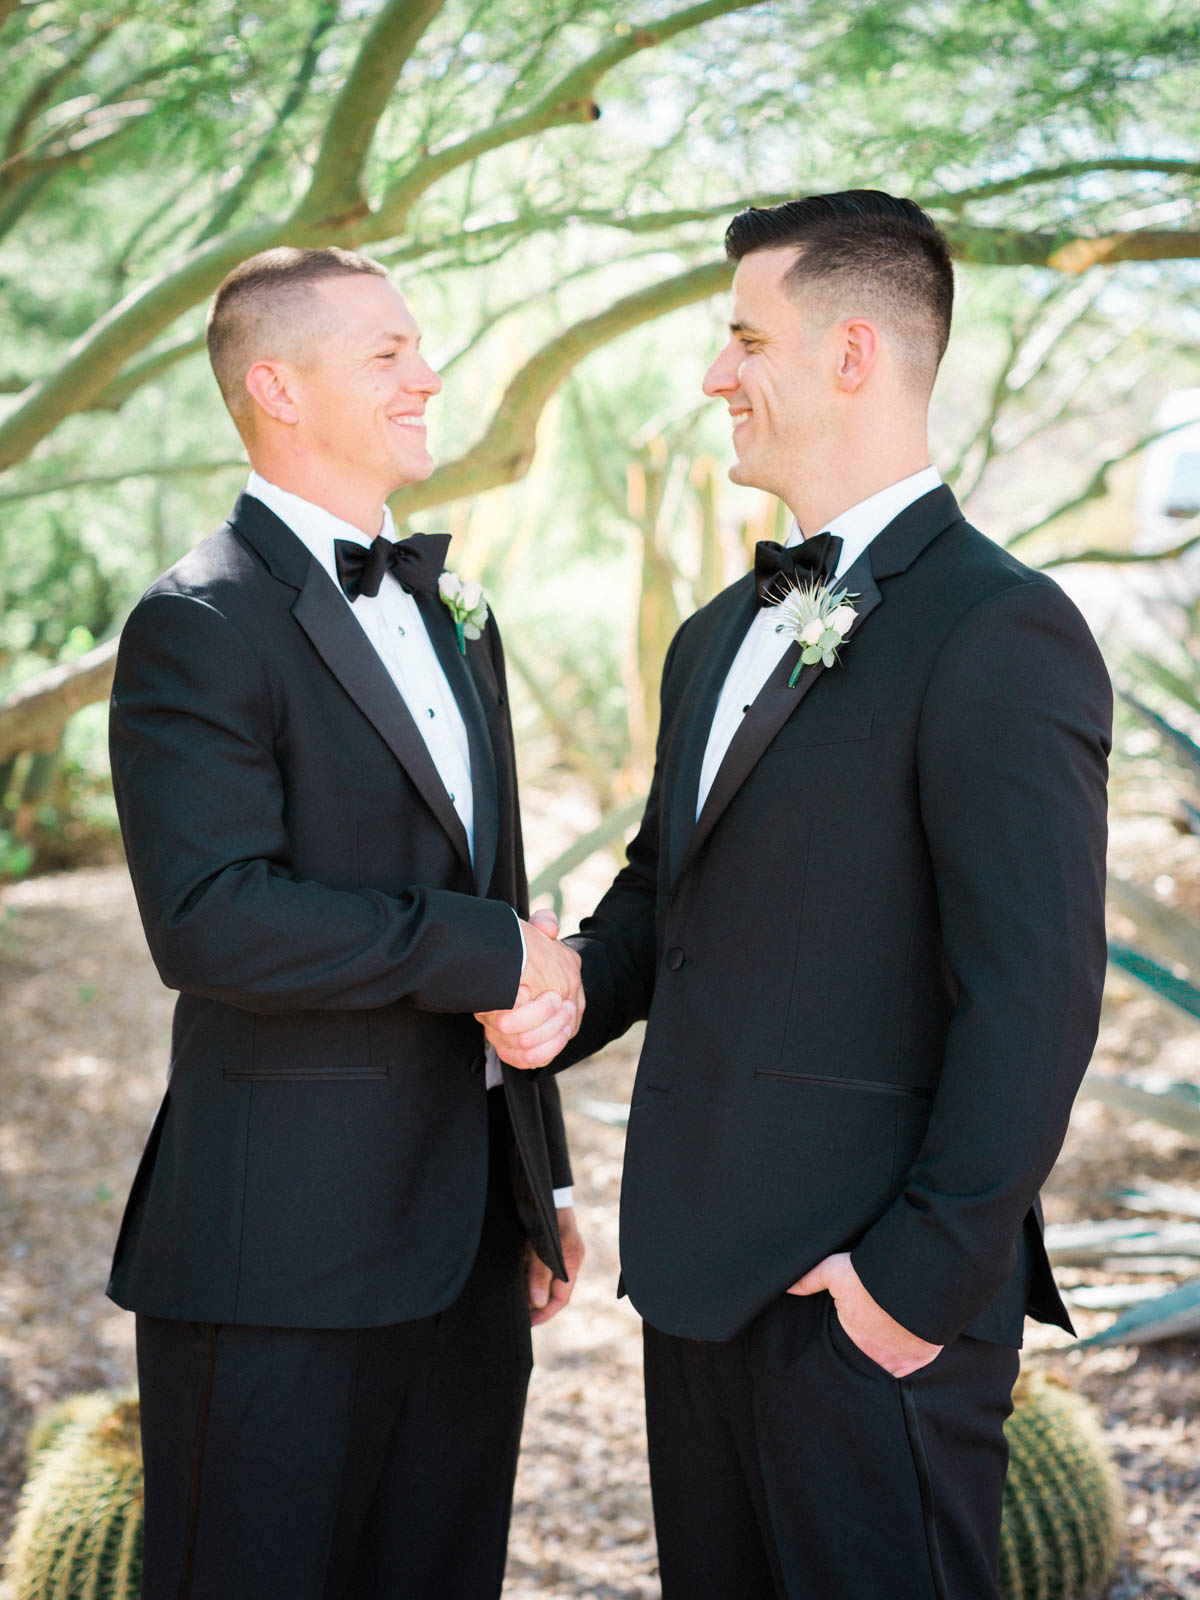 Groom shaking groomsmen hands captured by Tucson Wedding Photographers Betsy & John